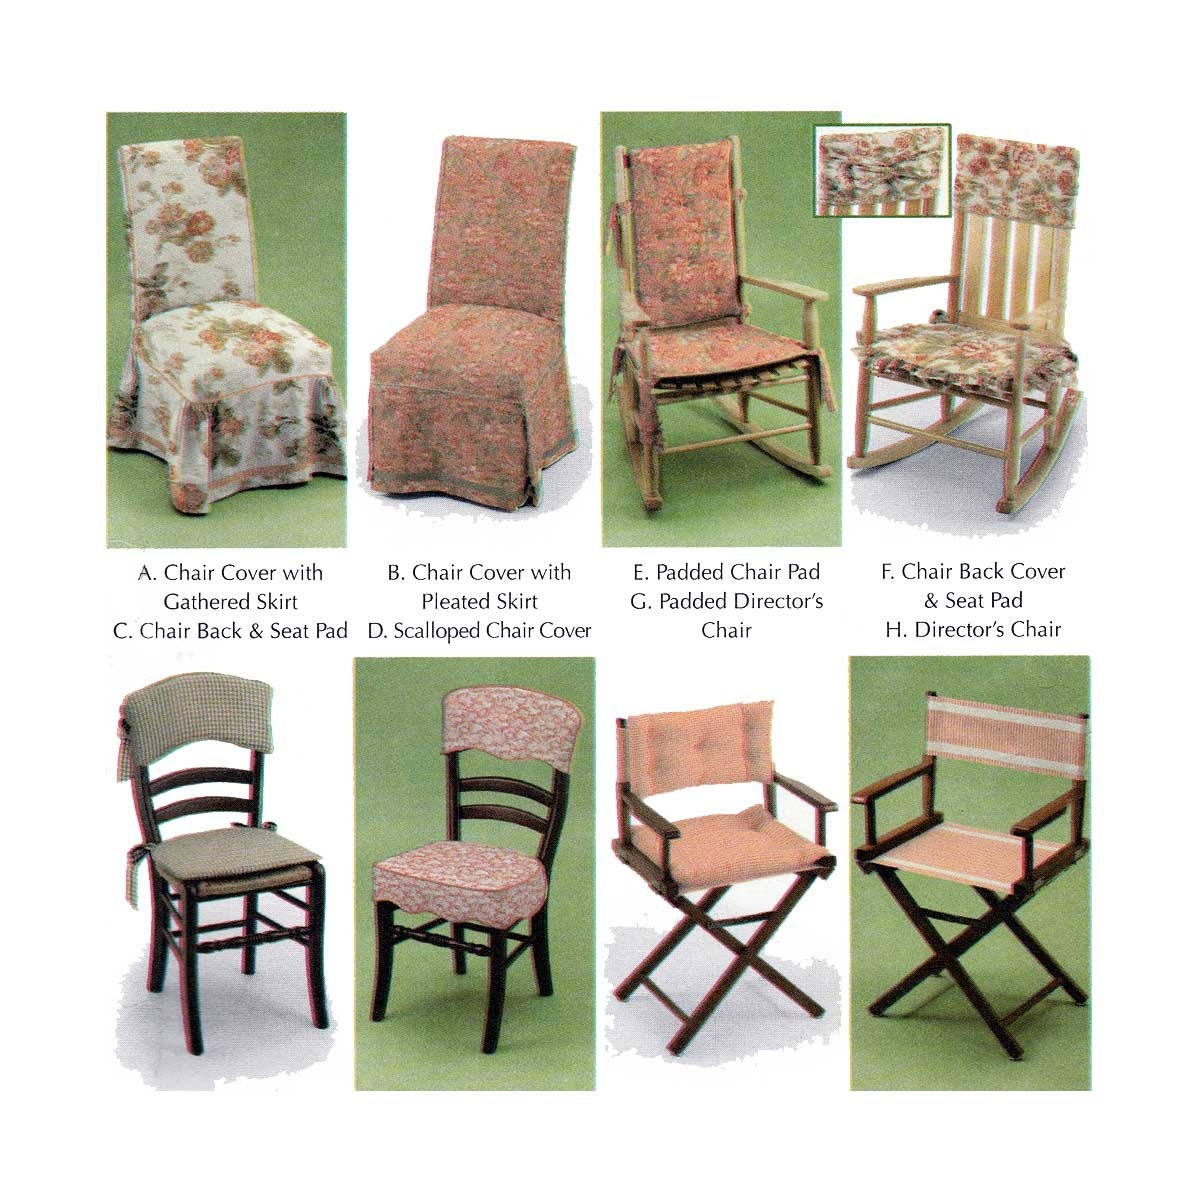 Home Decor Sewing Ideas: Chair Covers Chair Pads Home Decor Sewing Pattern By Donna